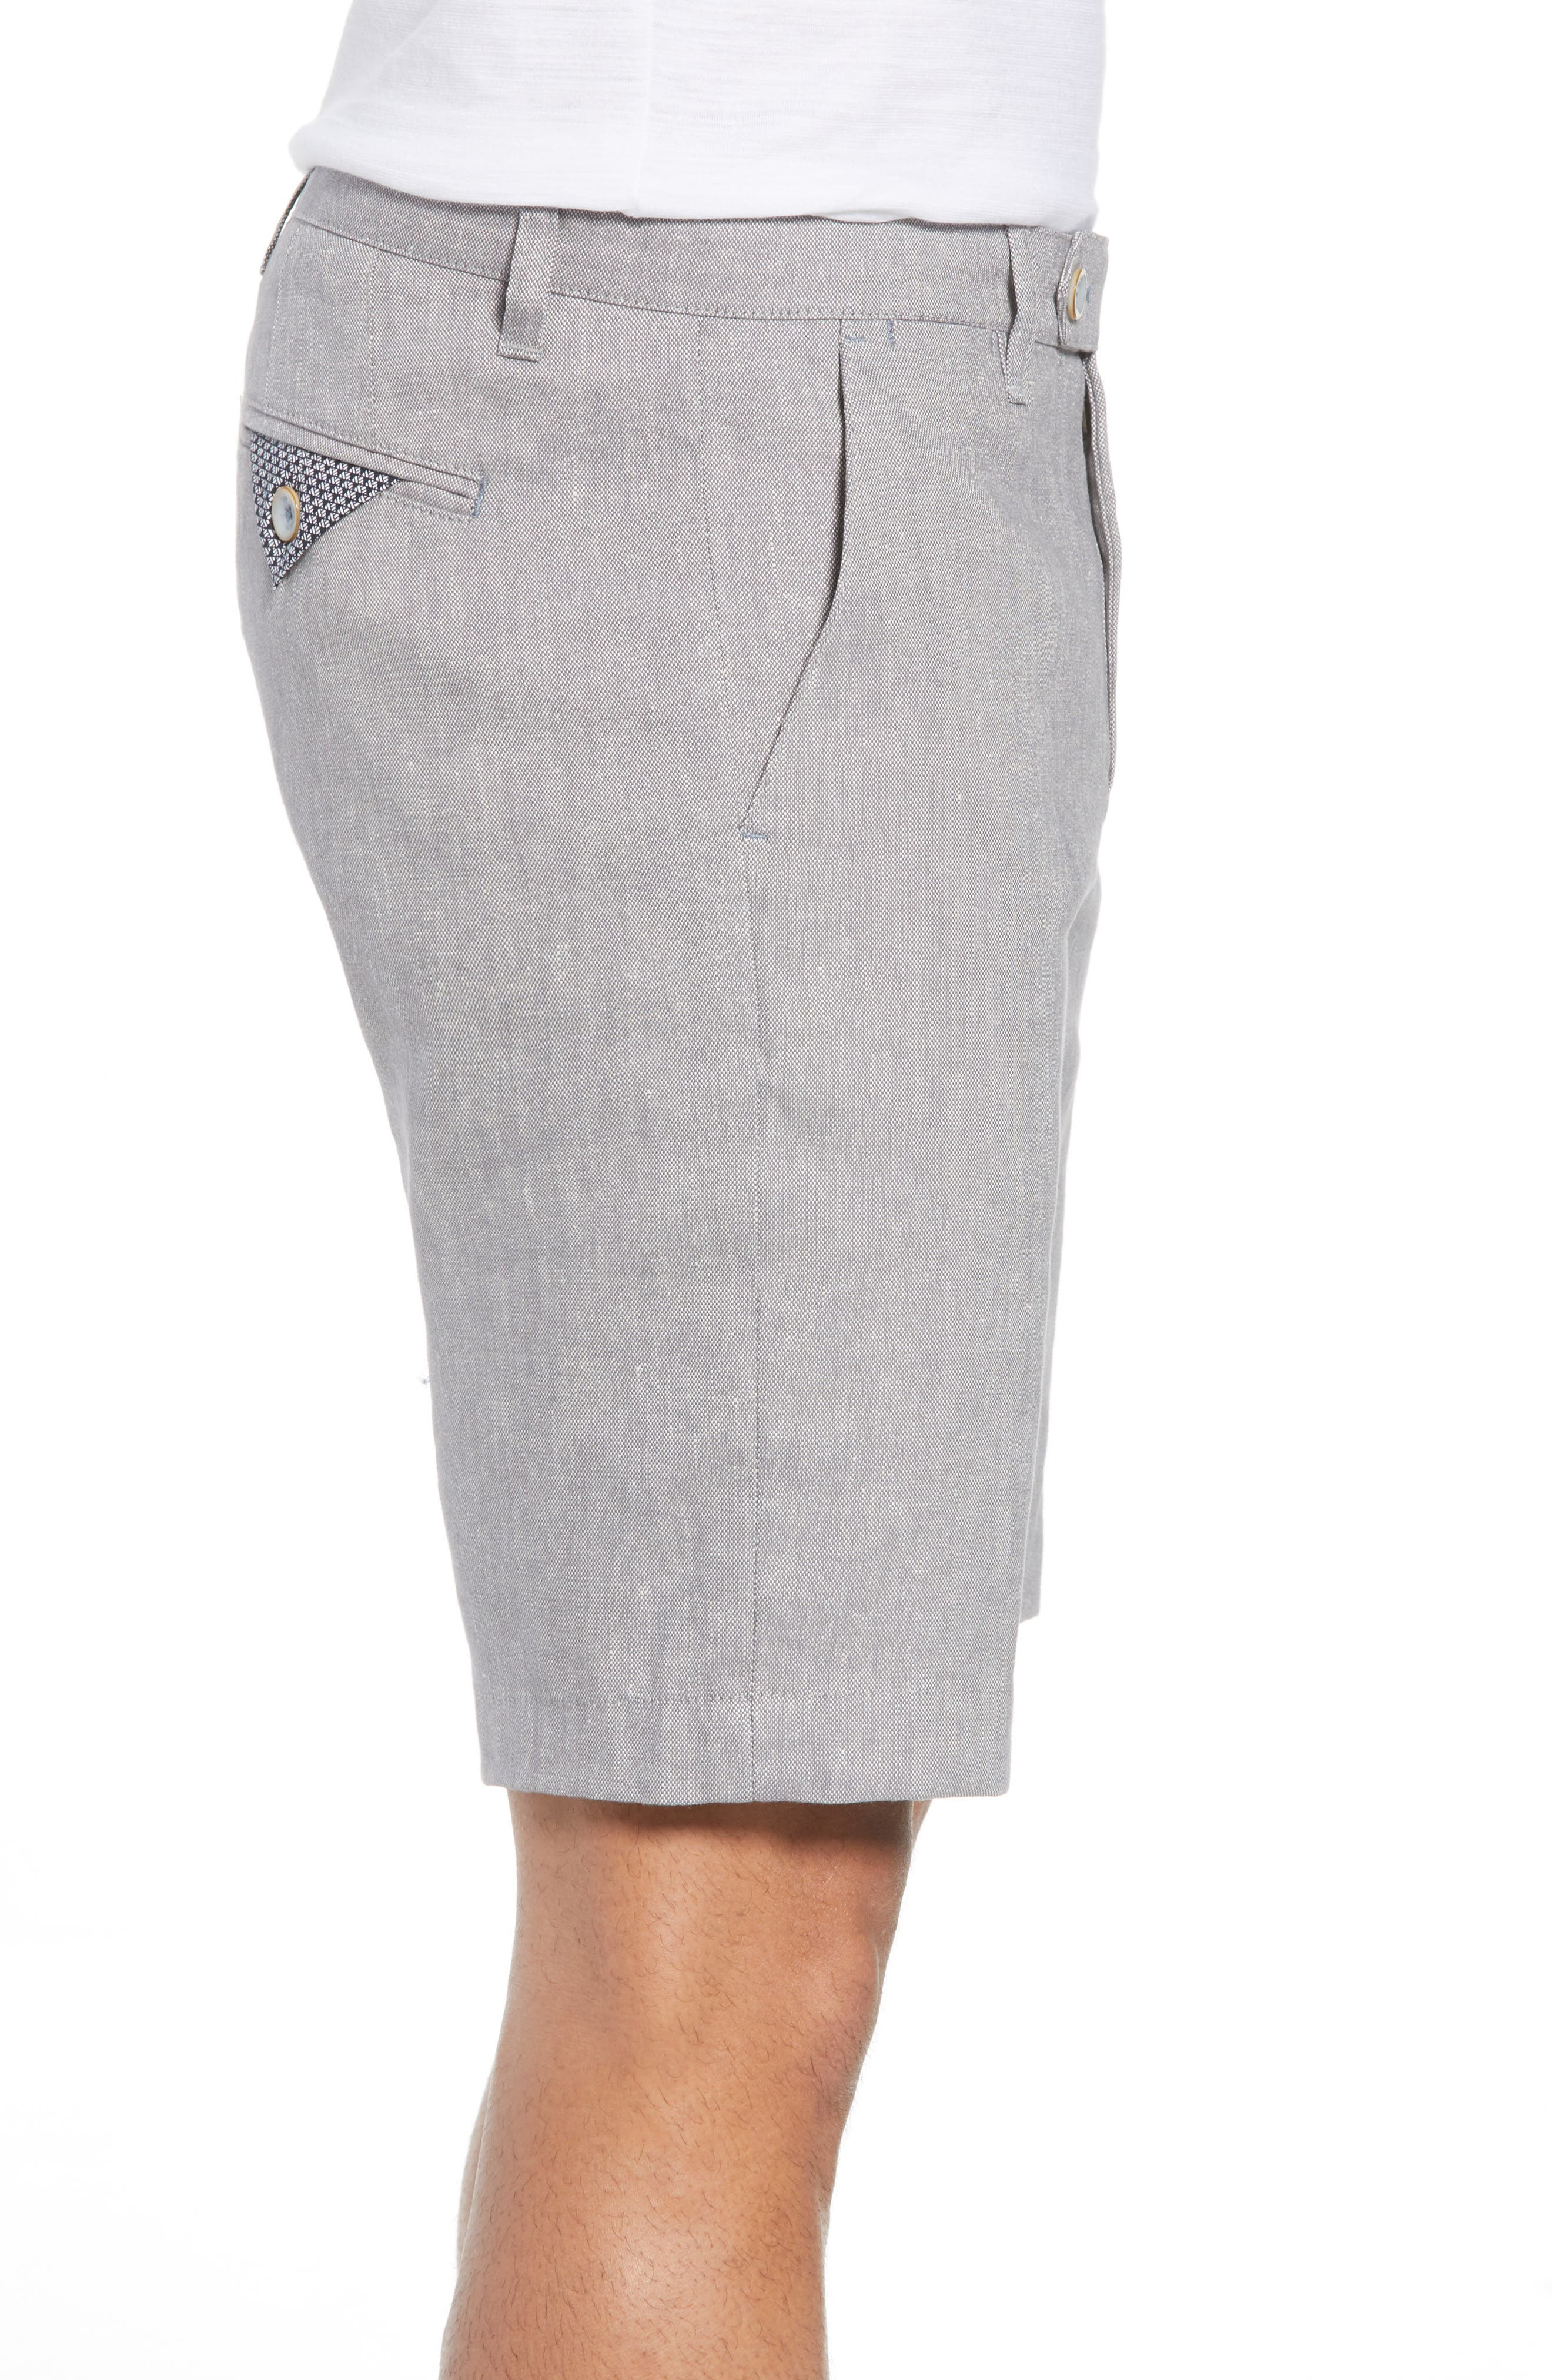 Newshow Flat Front Stretch Cotton Blend Shorts,                             Alternate thumbnail 3, color,                             050